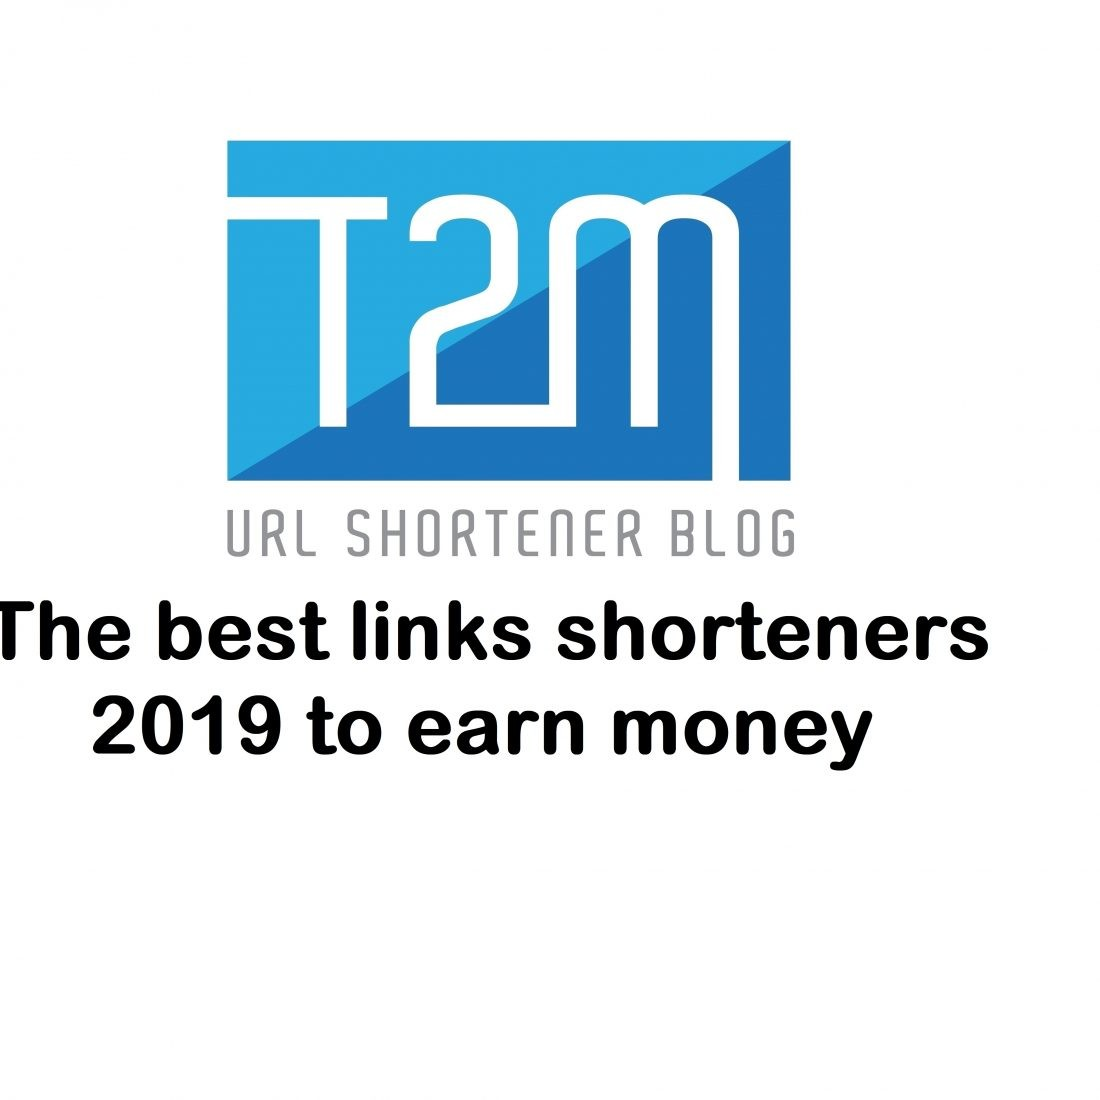 The best links shorteners 2019 to earn money